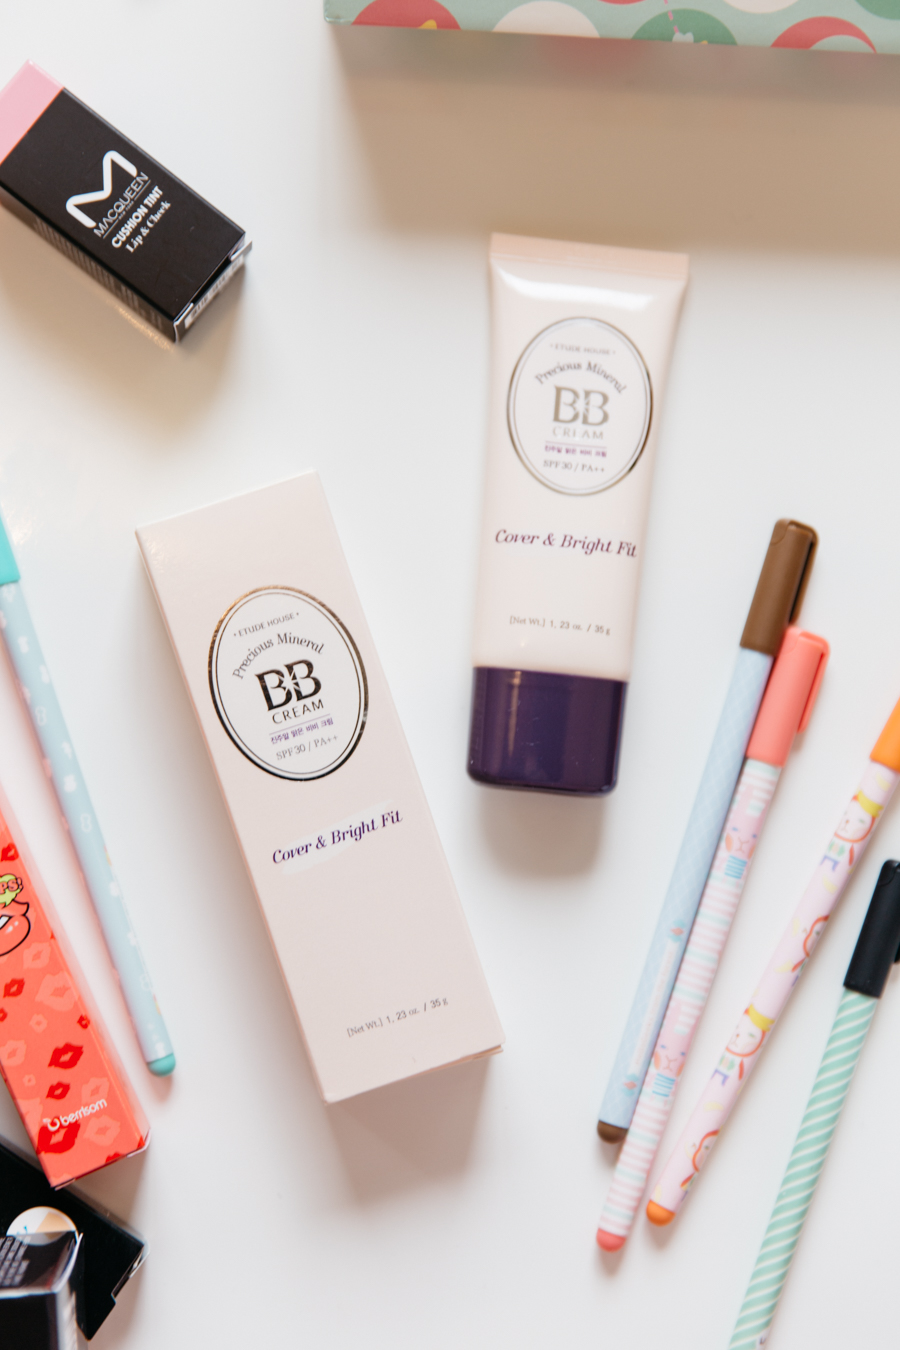 Etude House Cover & Bright Fit BB cream.